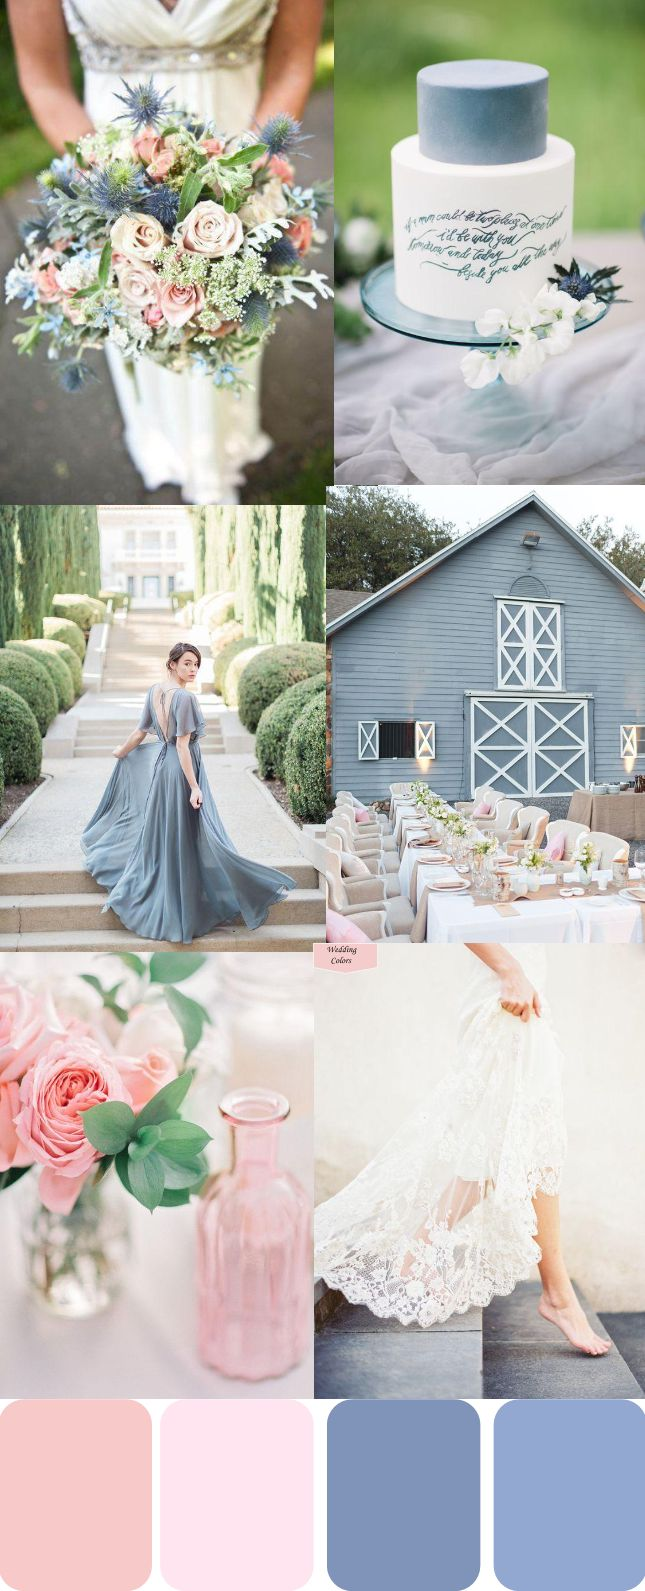 17 best wedding colors pastel images on pinterest weddings romantic rose quartz and serenity wedding inspiration junglespirit Image collections